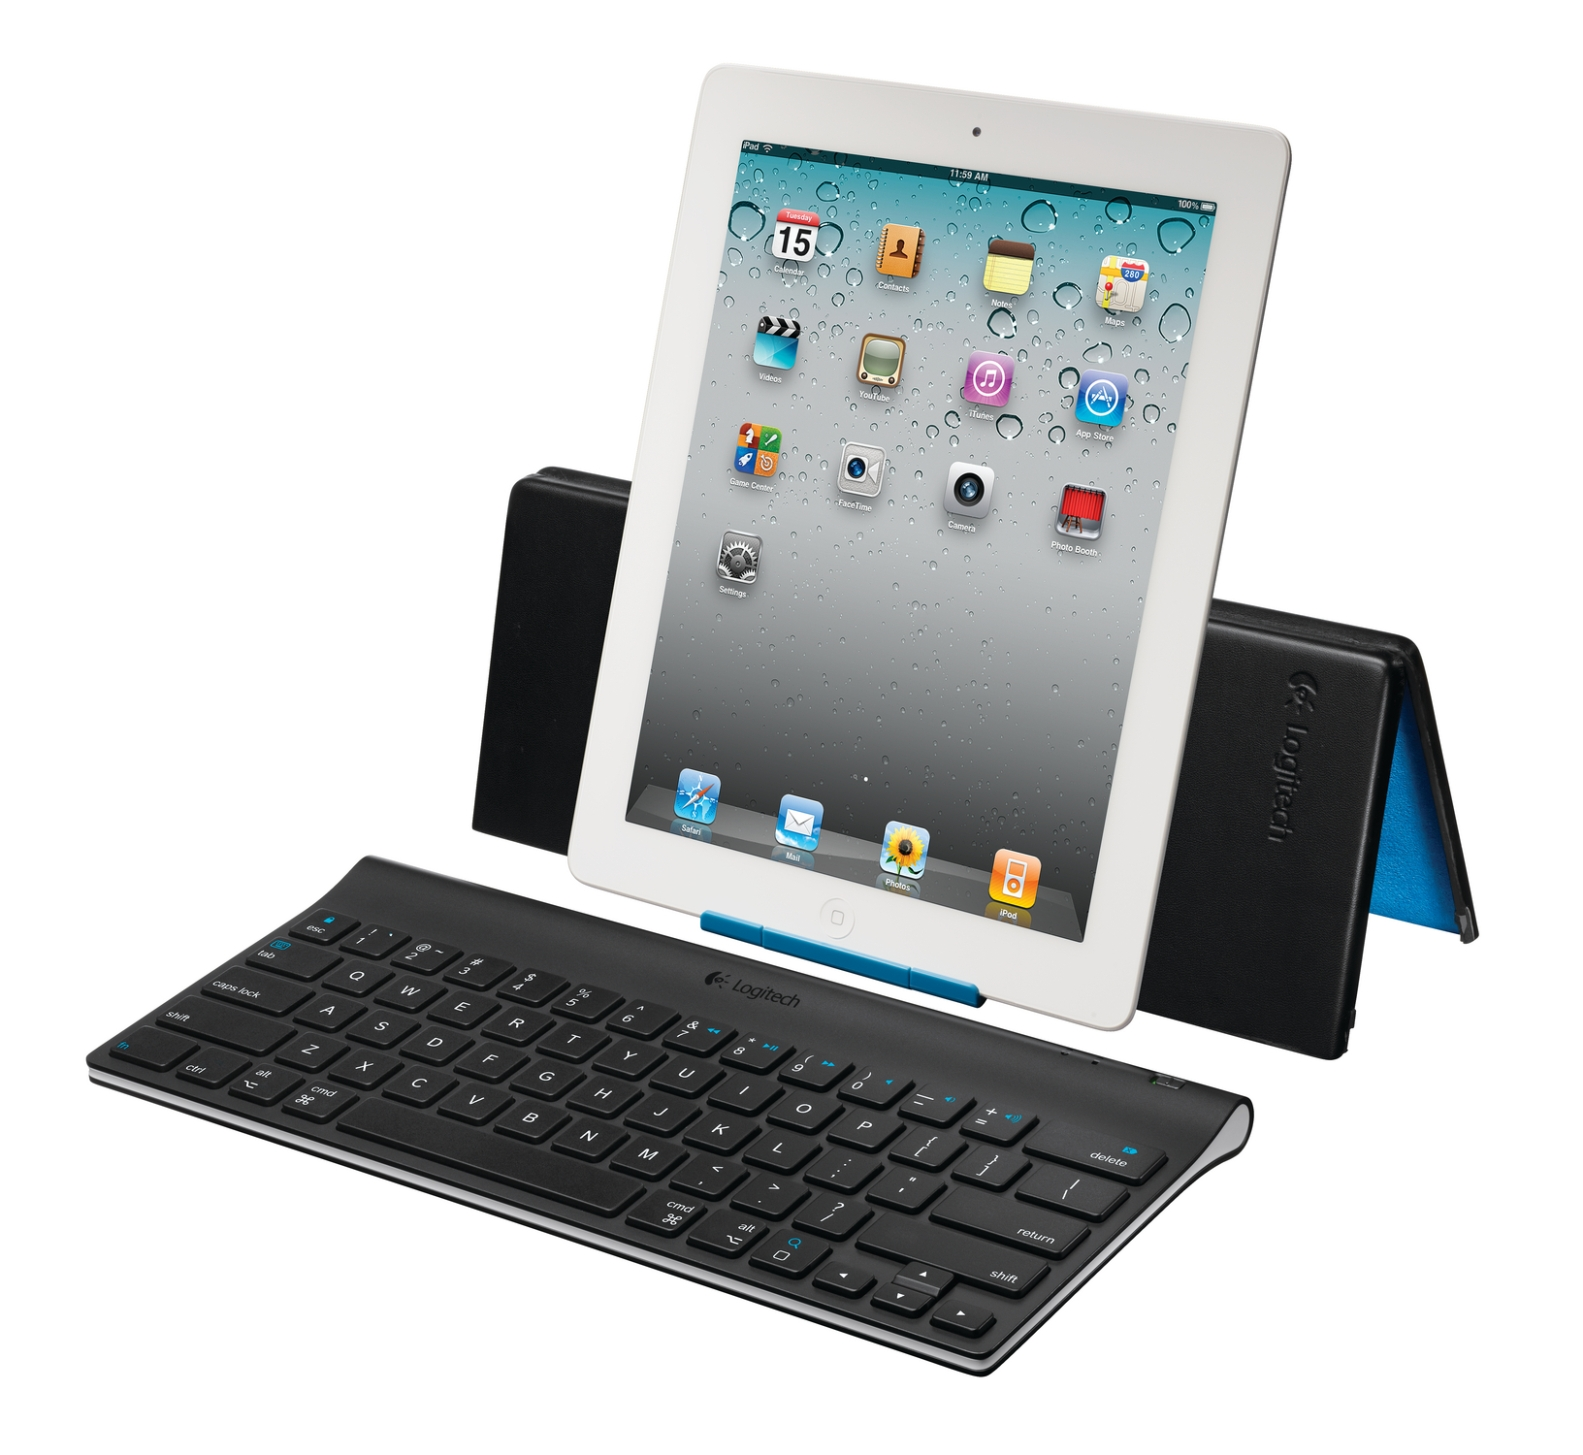 Logitech Tablet Keyboard For iPad  Tastatura Logitech pentru iPad Logitech Tablet Keyboard For iPad